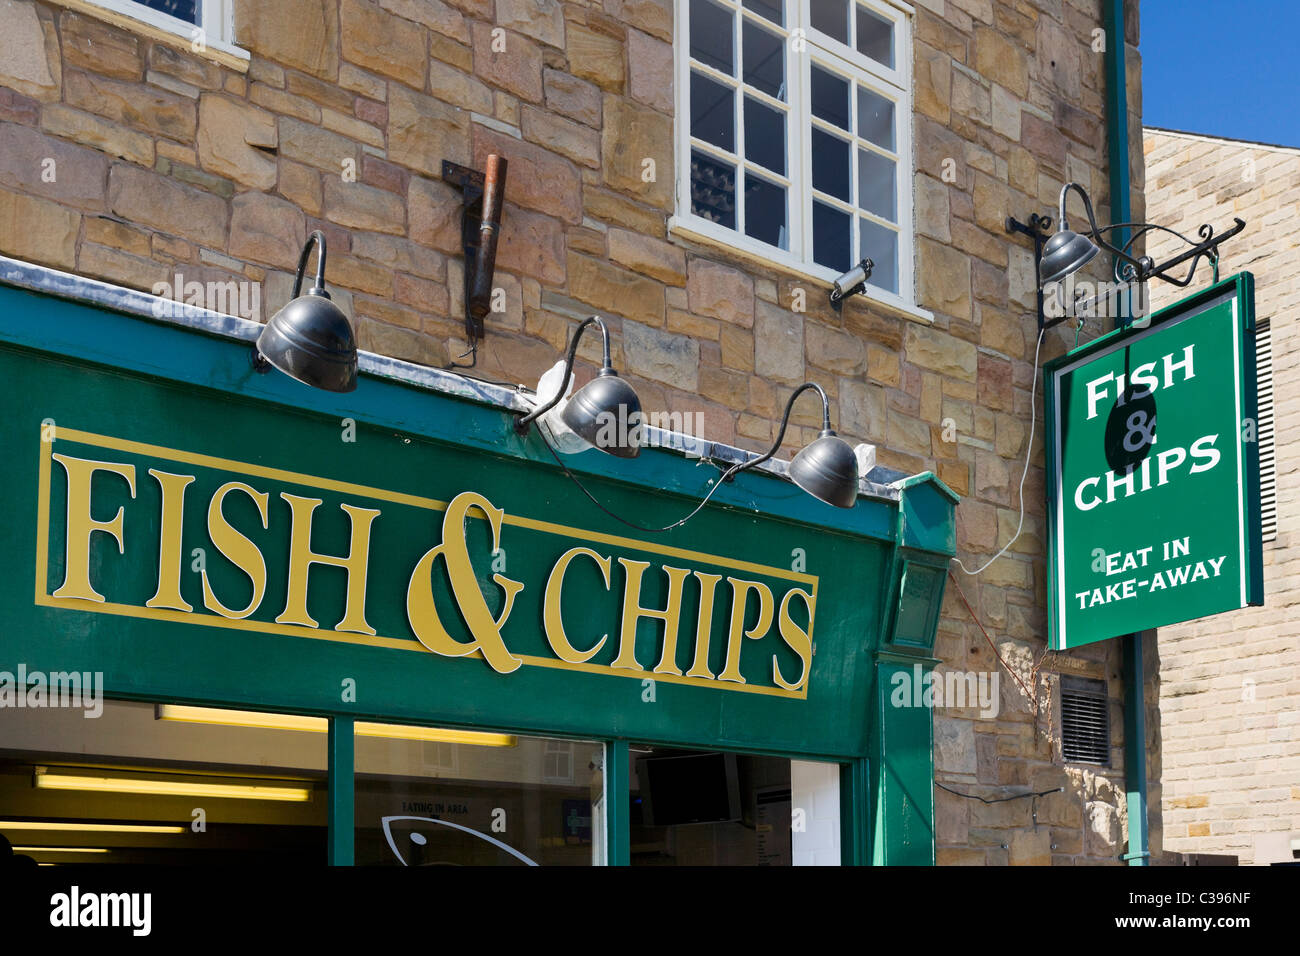 Traditional Fish and Chip Shop, Bakewell, The Peak District, Derbyshire, UK - Stock Image